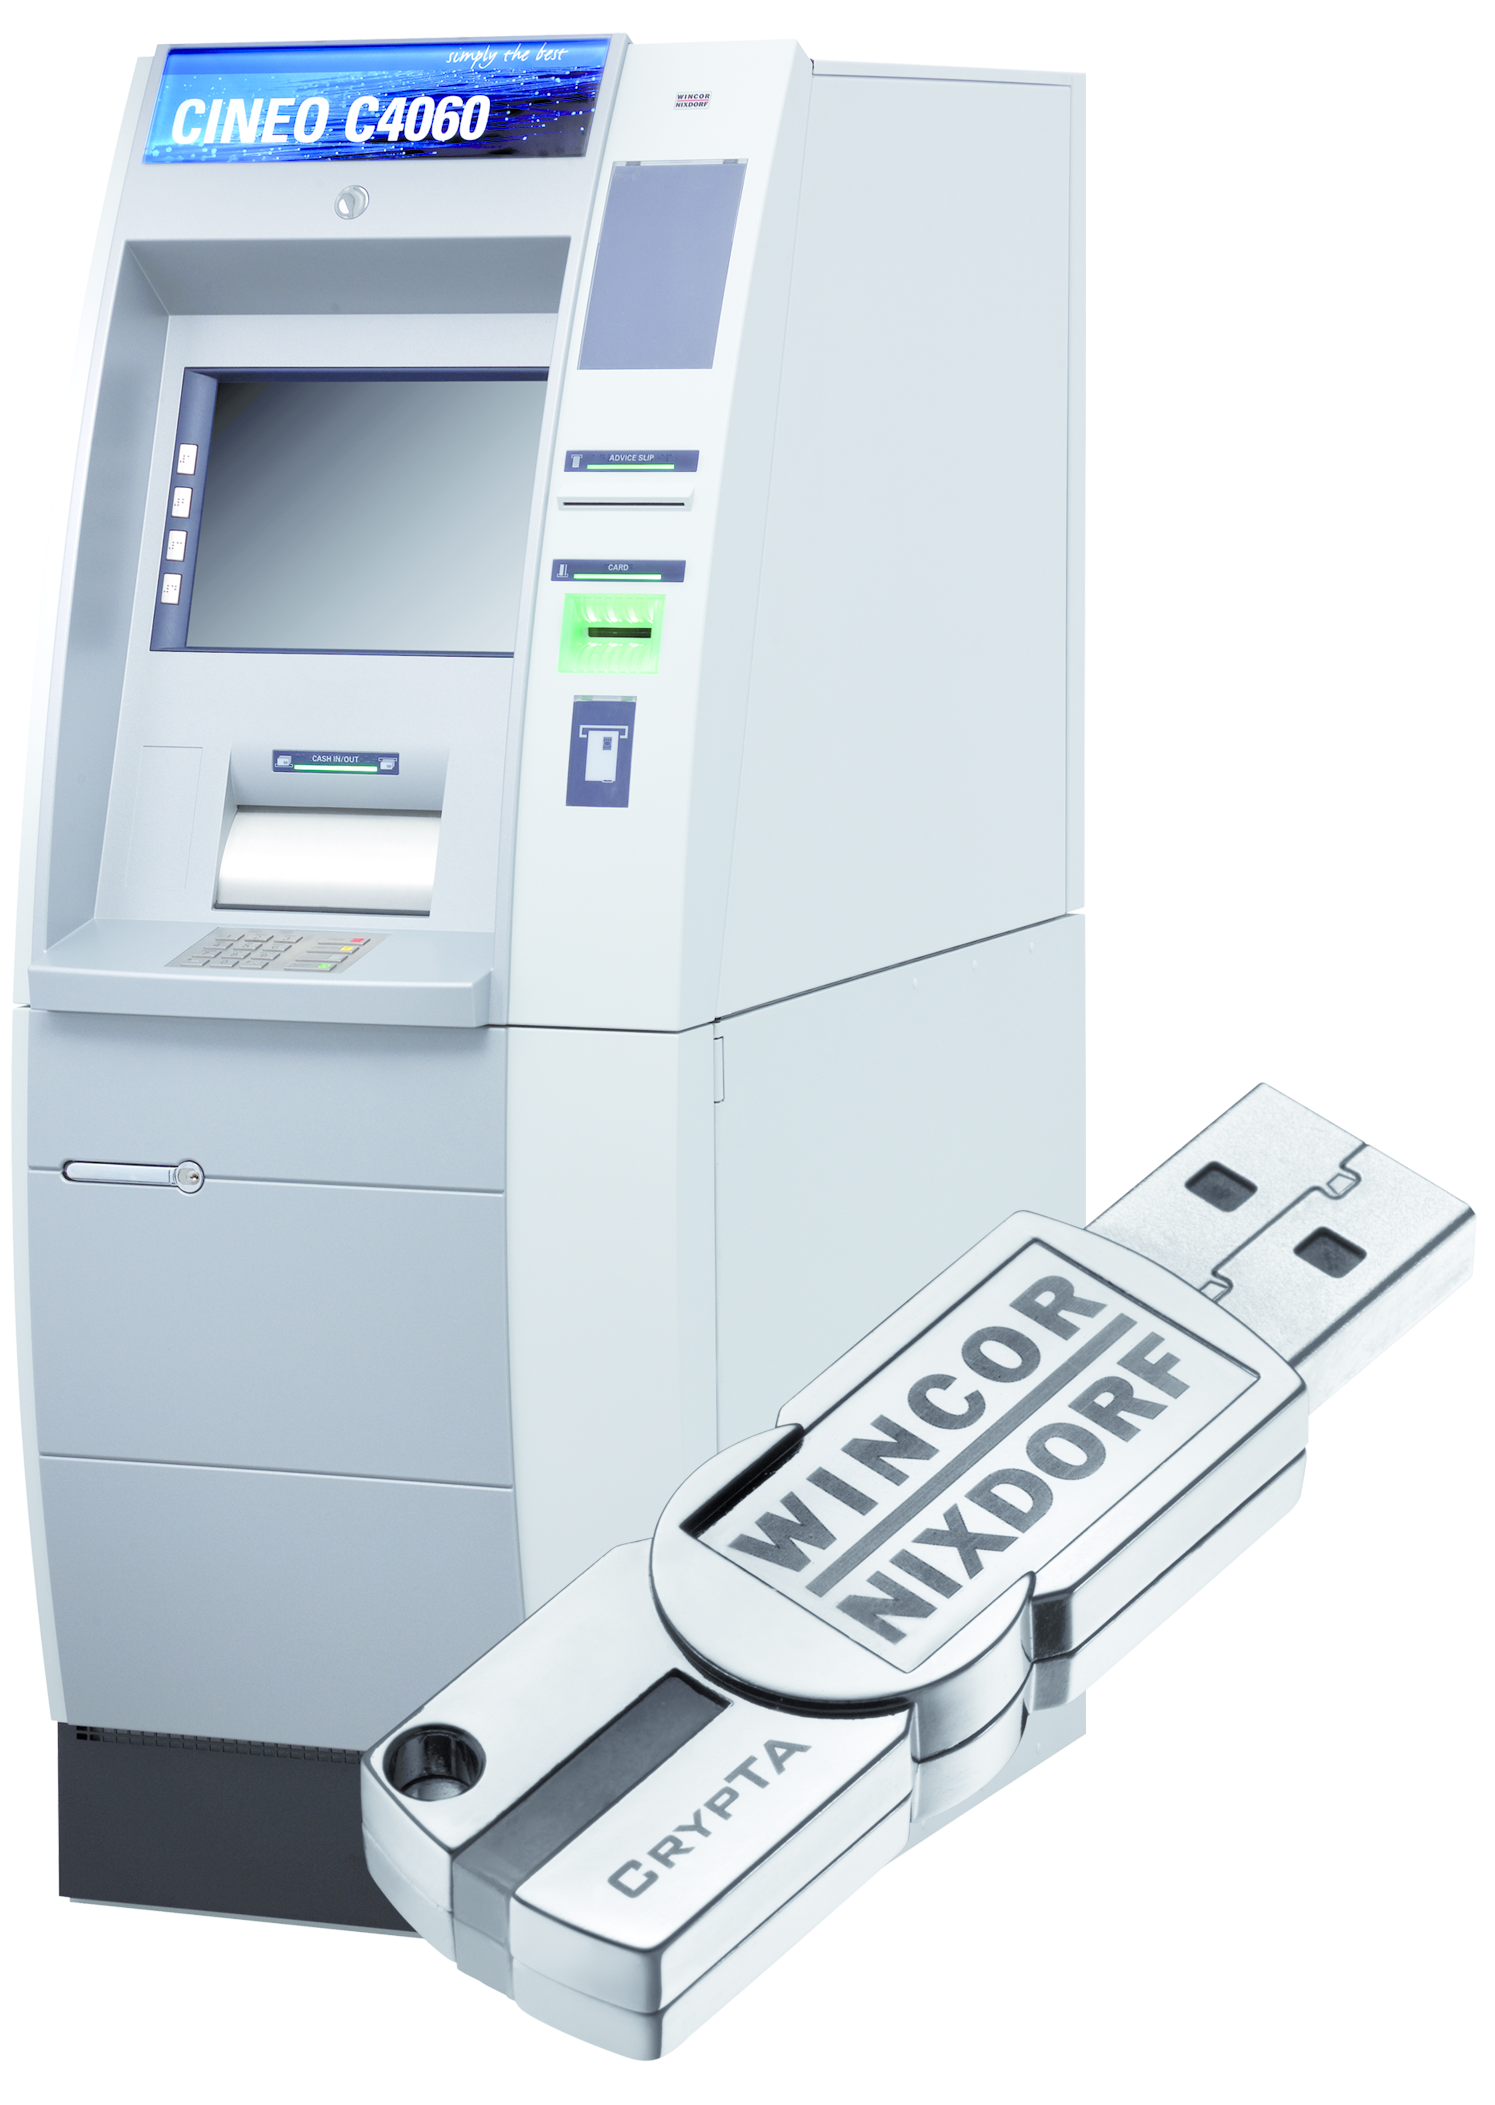 Wibu-Systems and Wincor Nixdorf join forces to increase security: Wibu  Systems